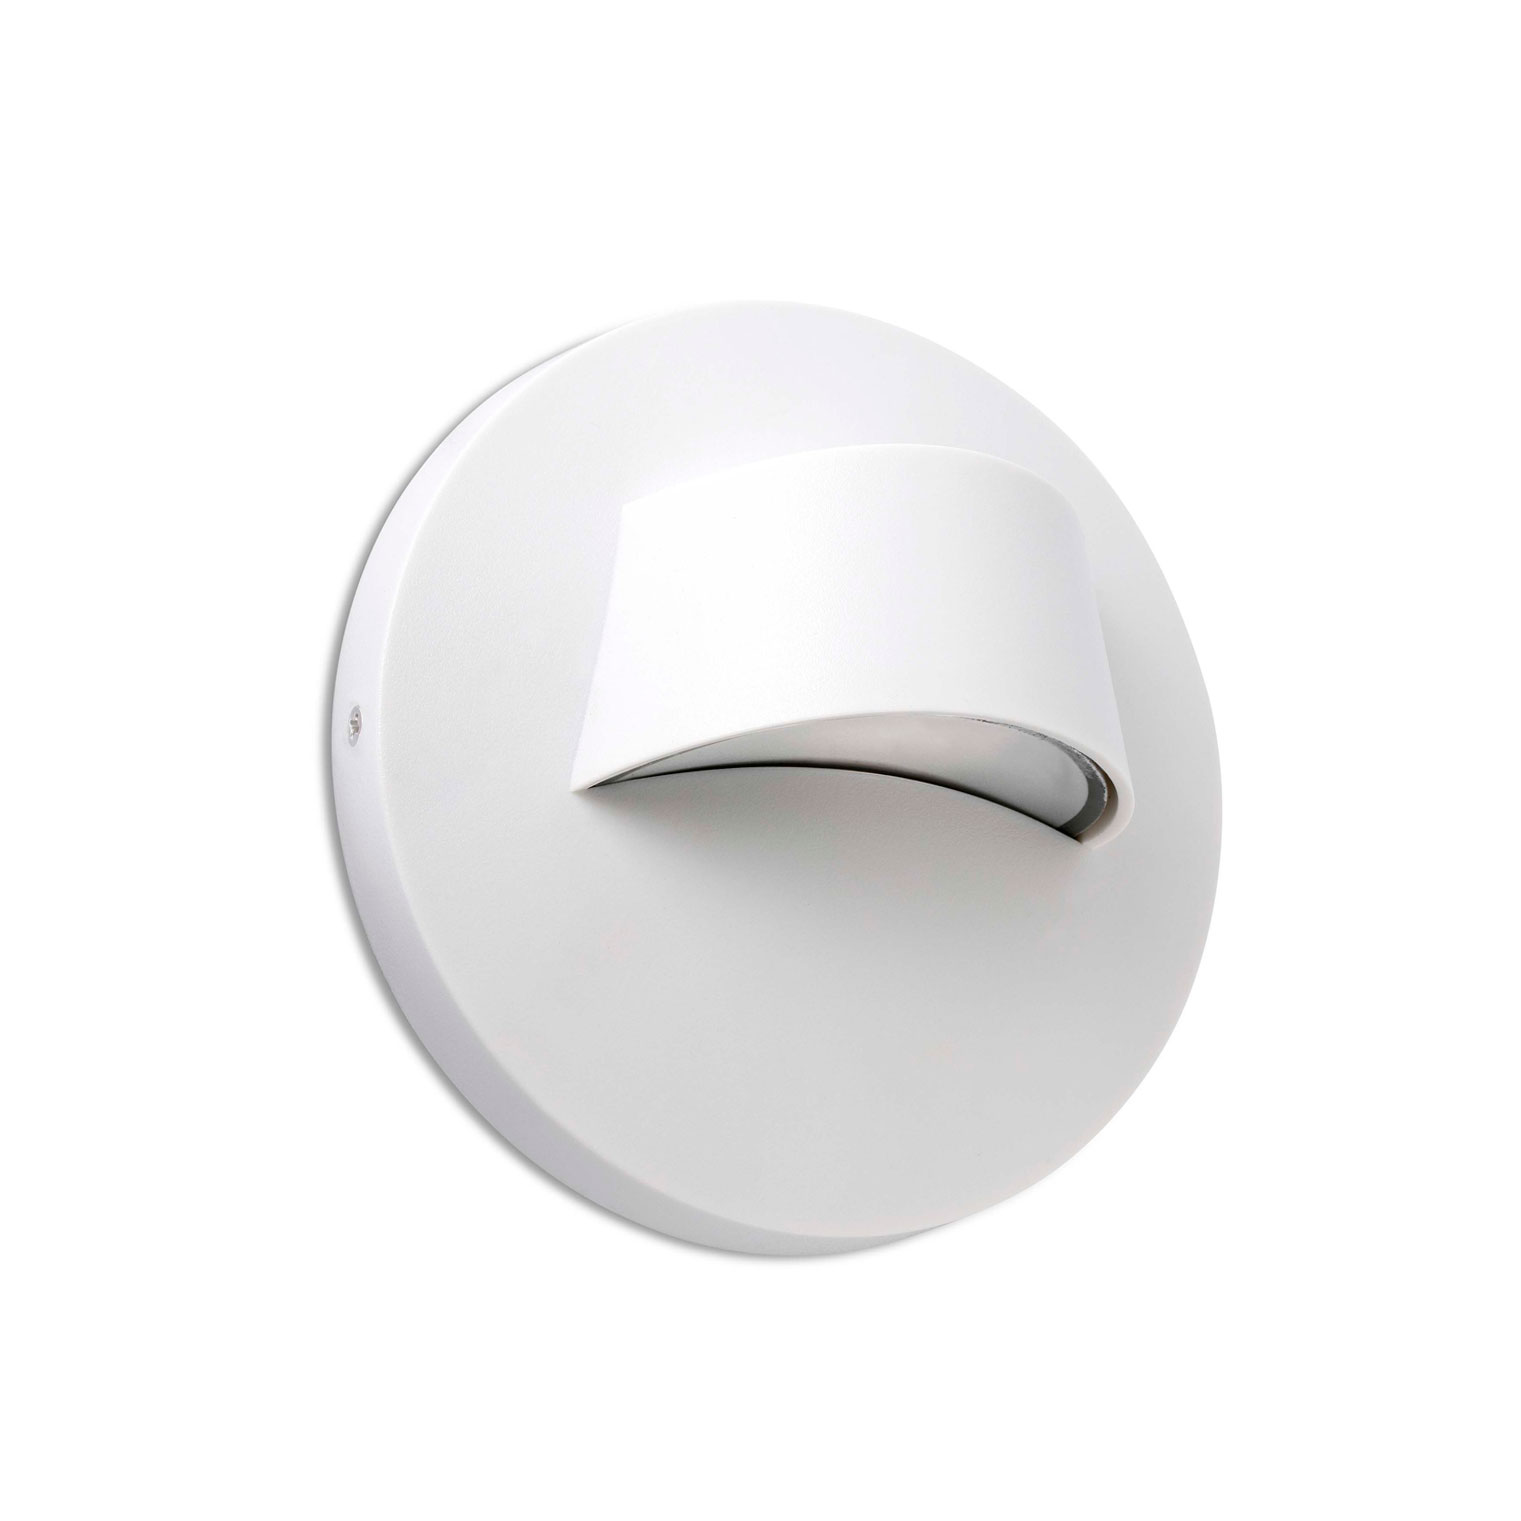 BROW WALL LAMP WHITE LED 3W 3000K